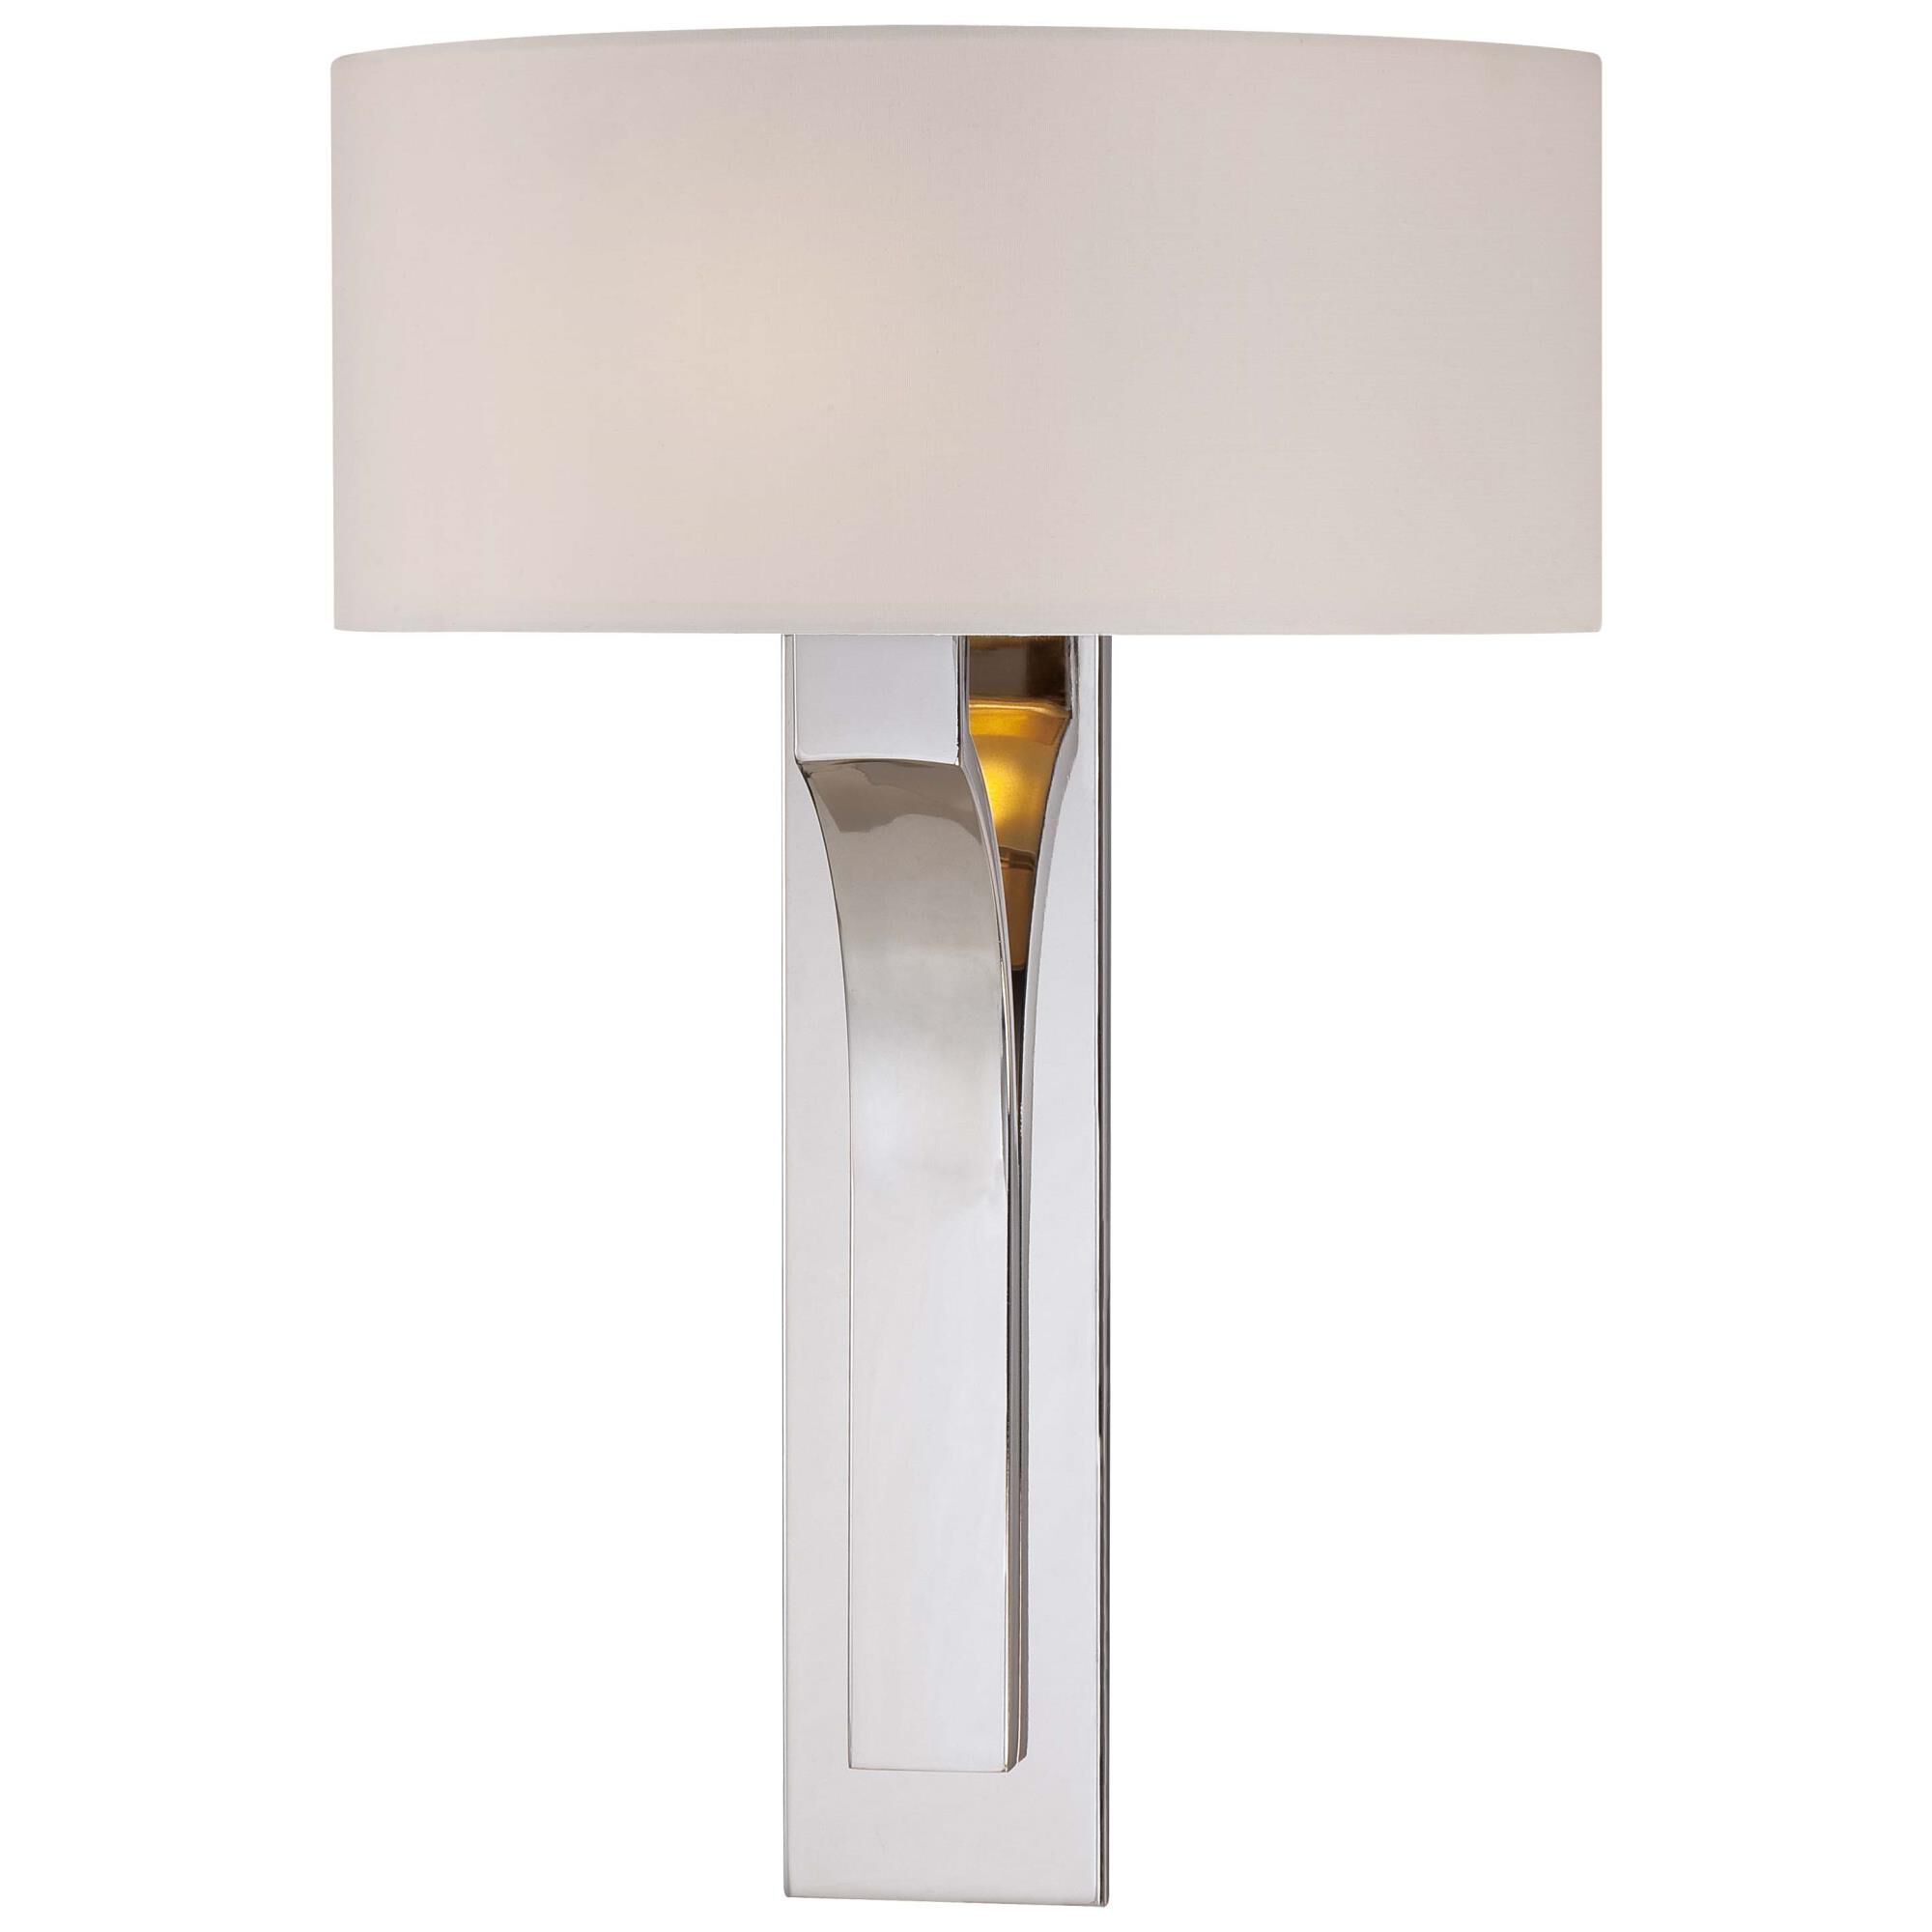 Kovacs 16 Inch Wall Sconce - P1705-613 - Transitional